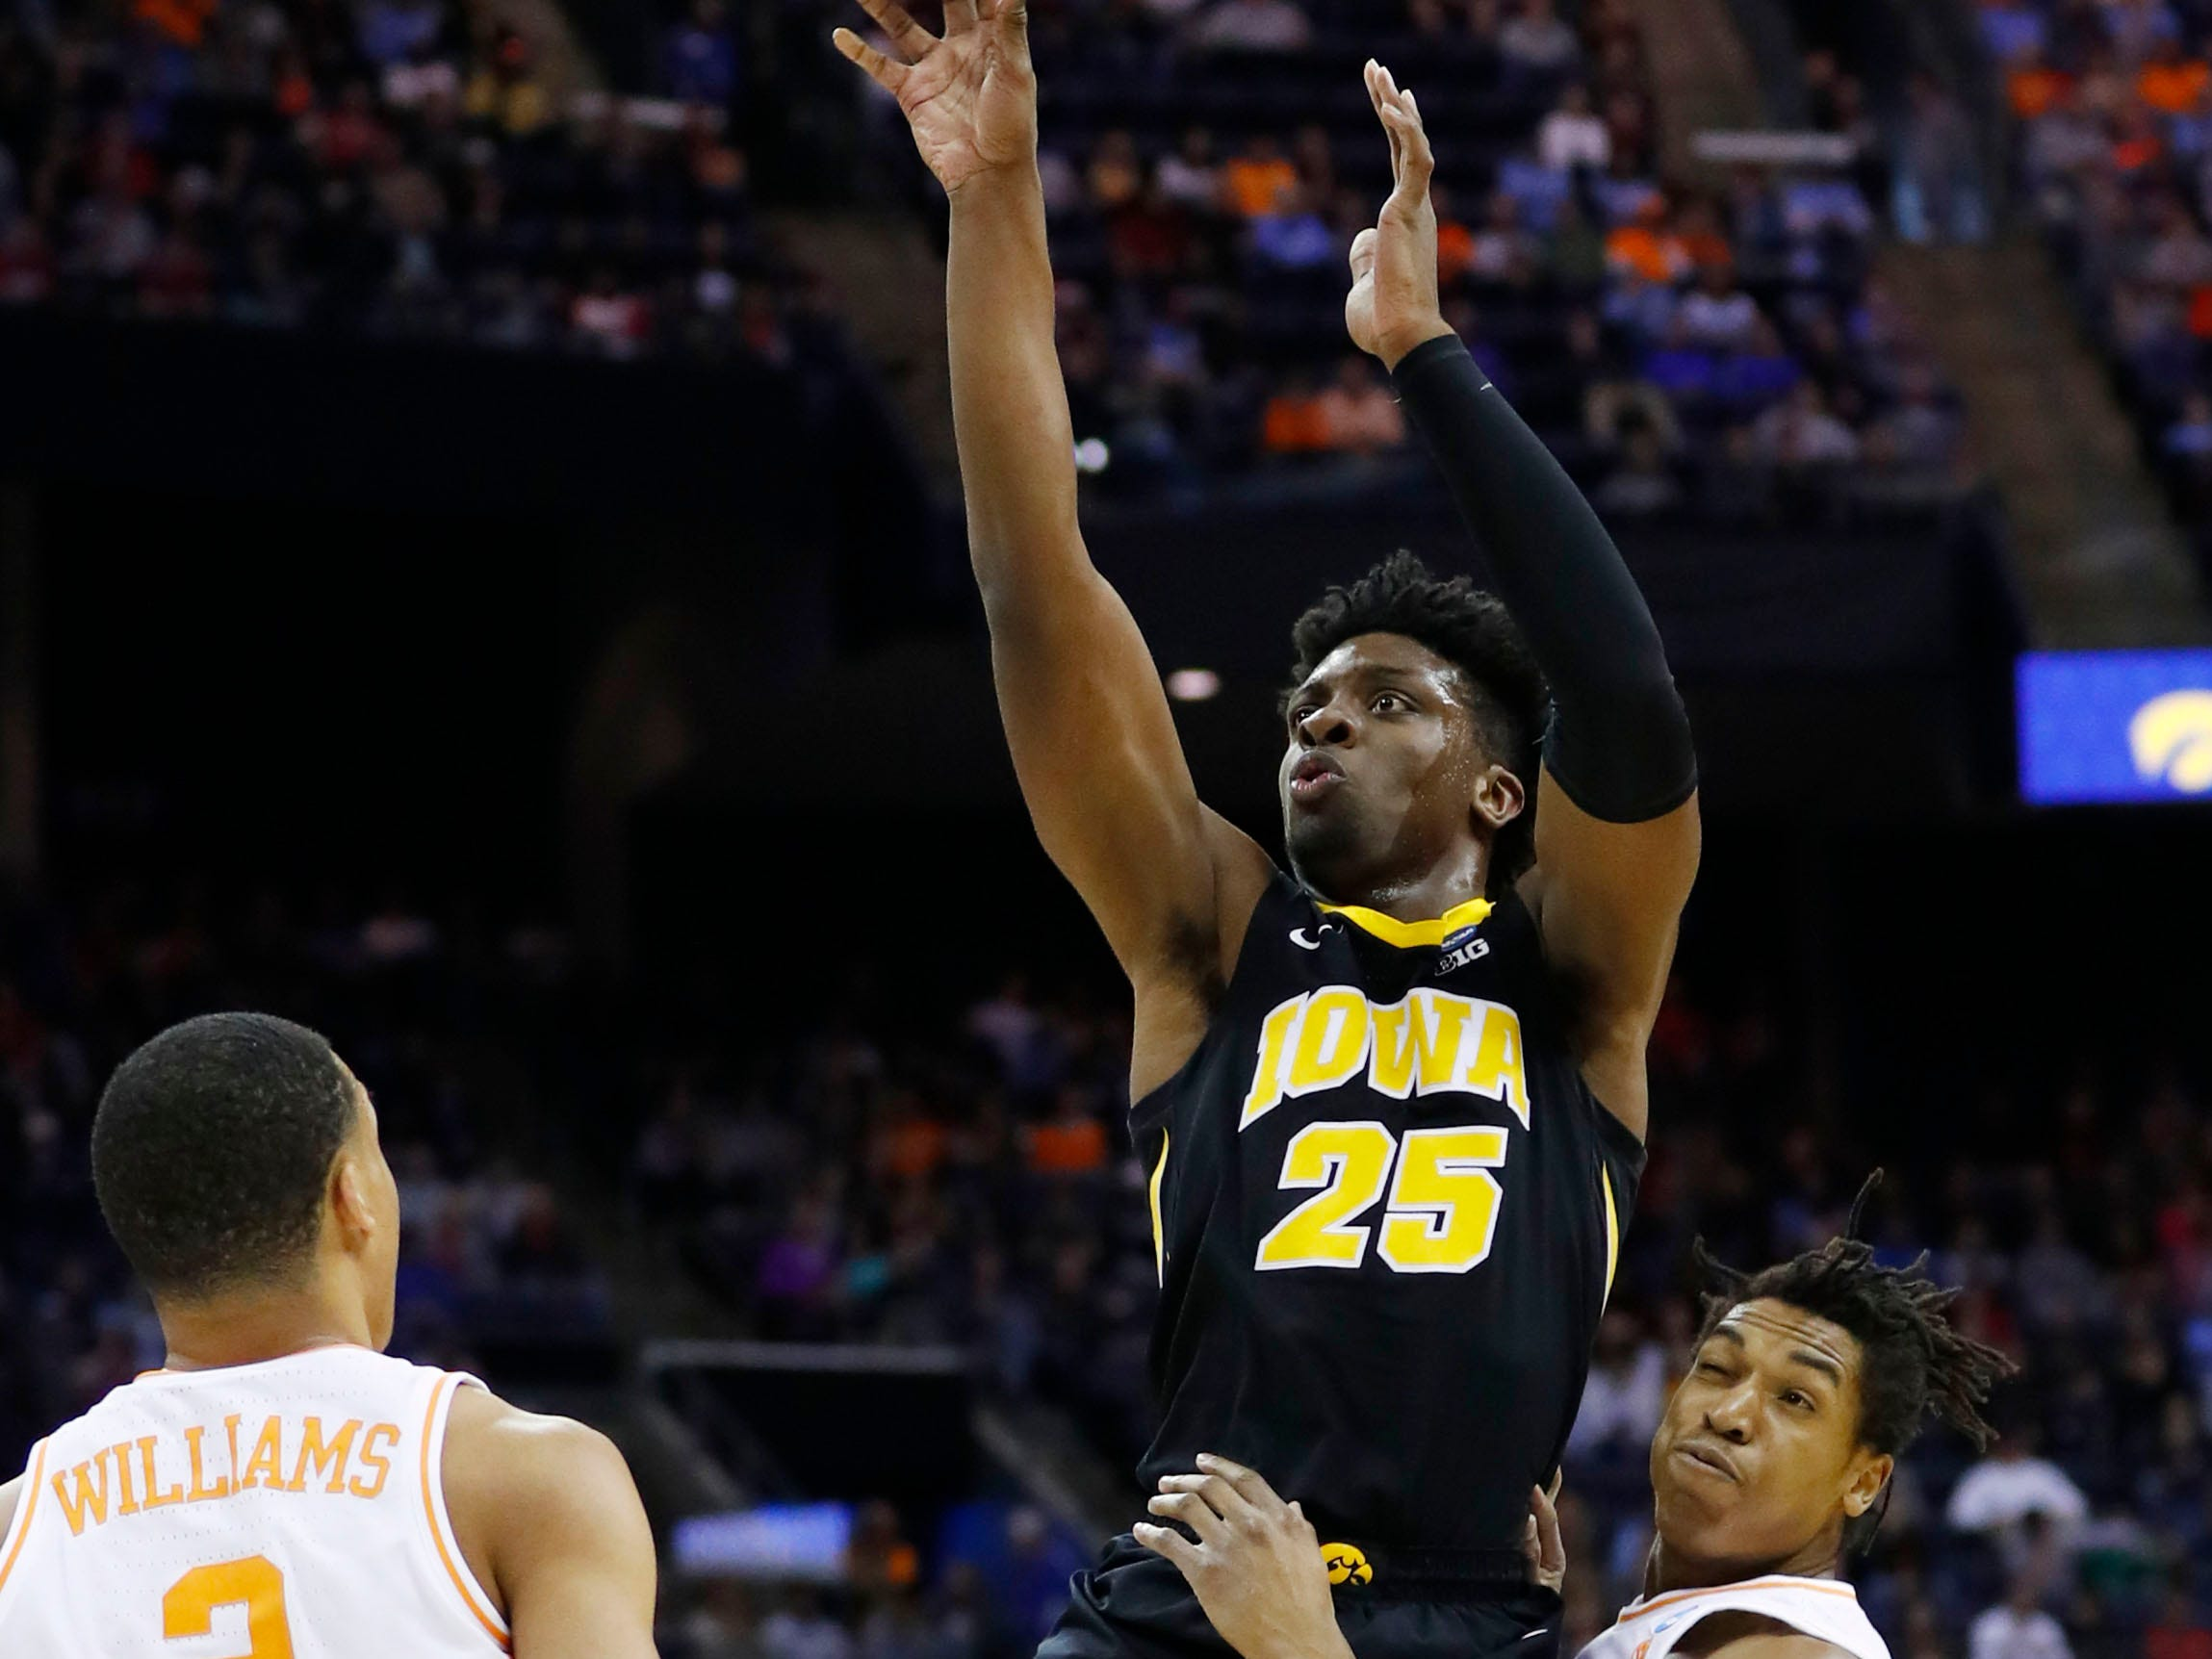 Iowa Hawkeyes forward Tyler Cook (25) shoots the ball in the first half against the Tennessee Volunteers in the second round of the 2019 NCAA Tournament at Nationwide Arena.